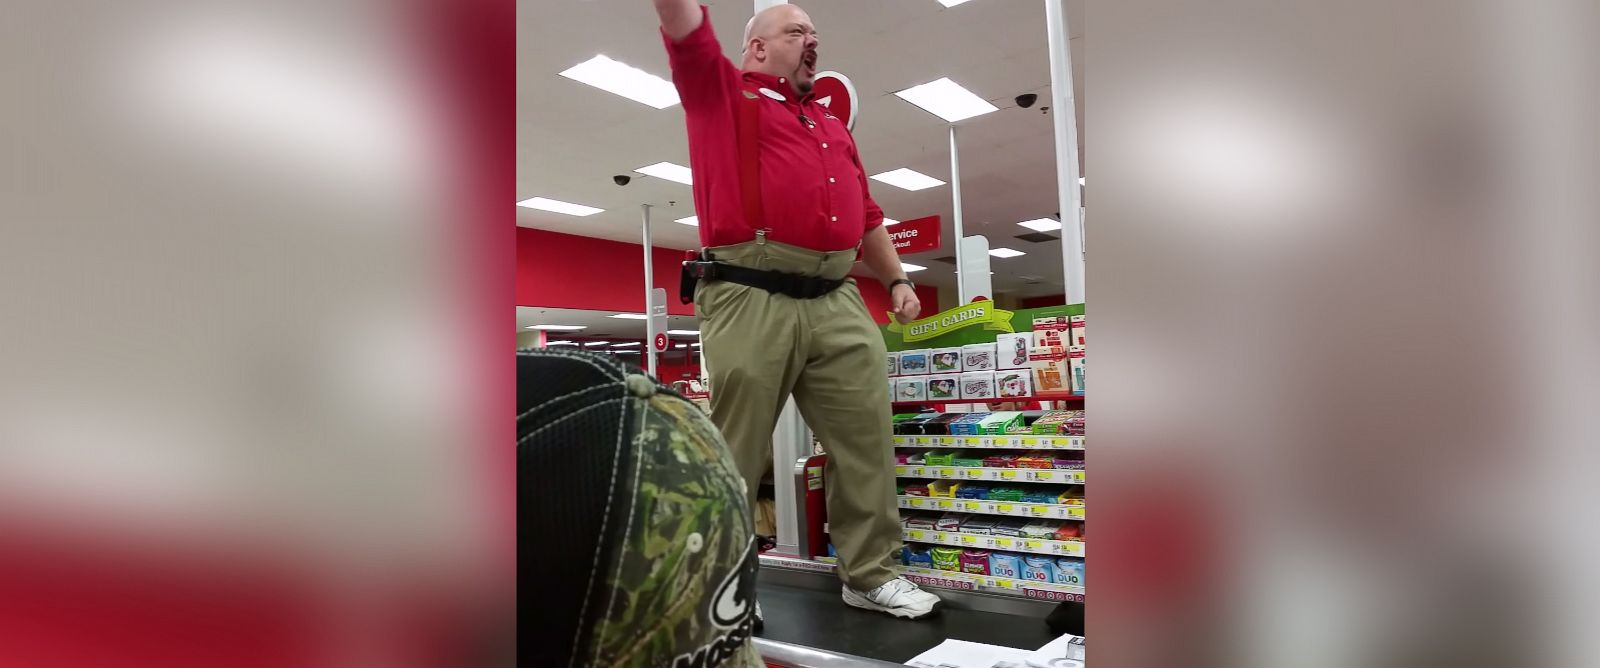 PHOTO: Target employee Scott Simms gives coworkers a pep talk before the Black Friday rush.